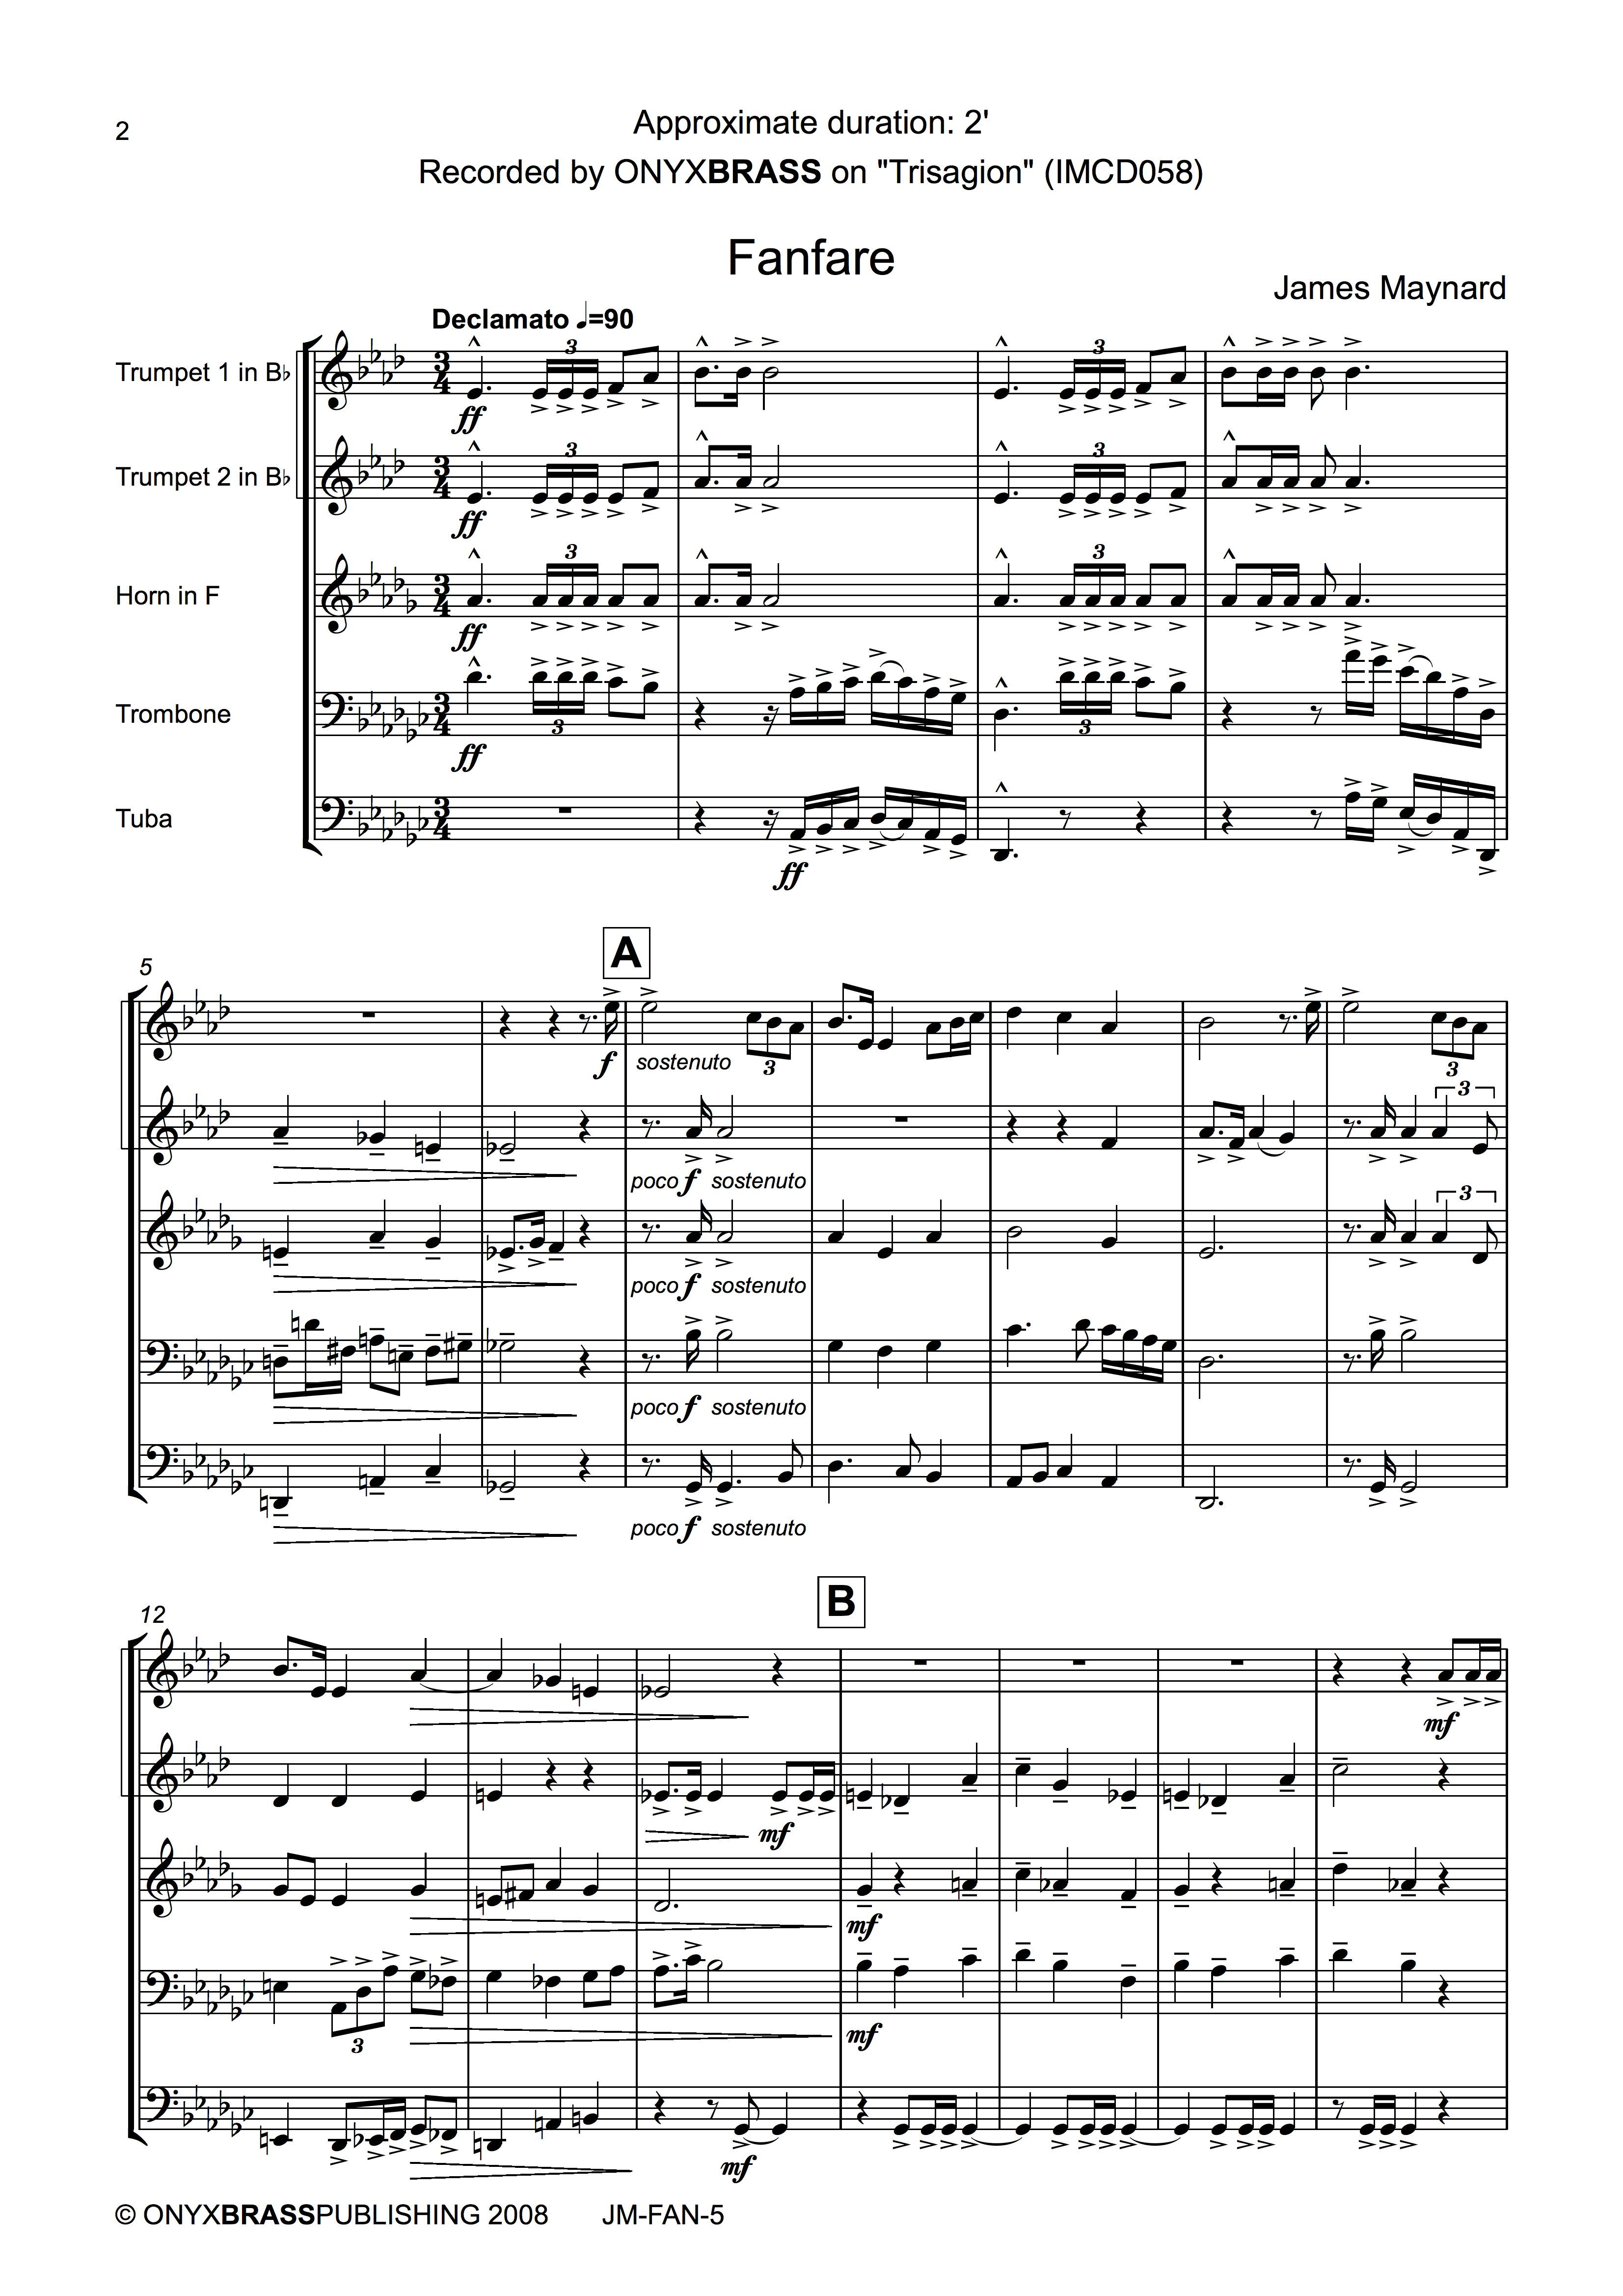 Maynard Fanfare - example page